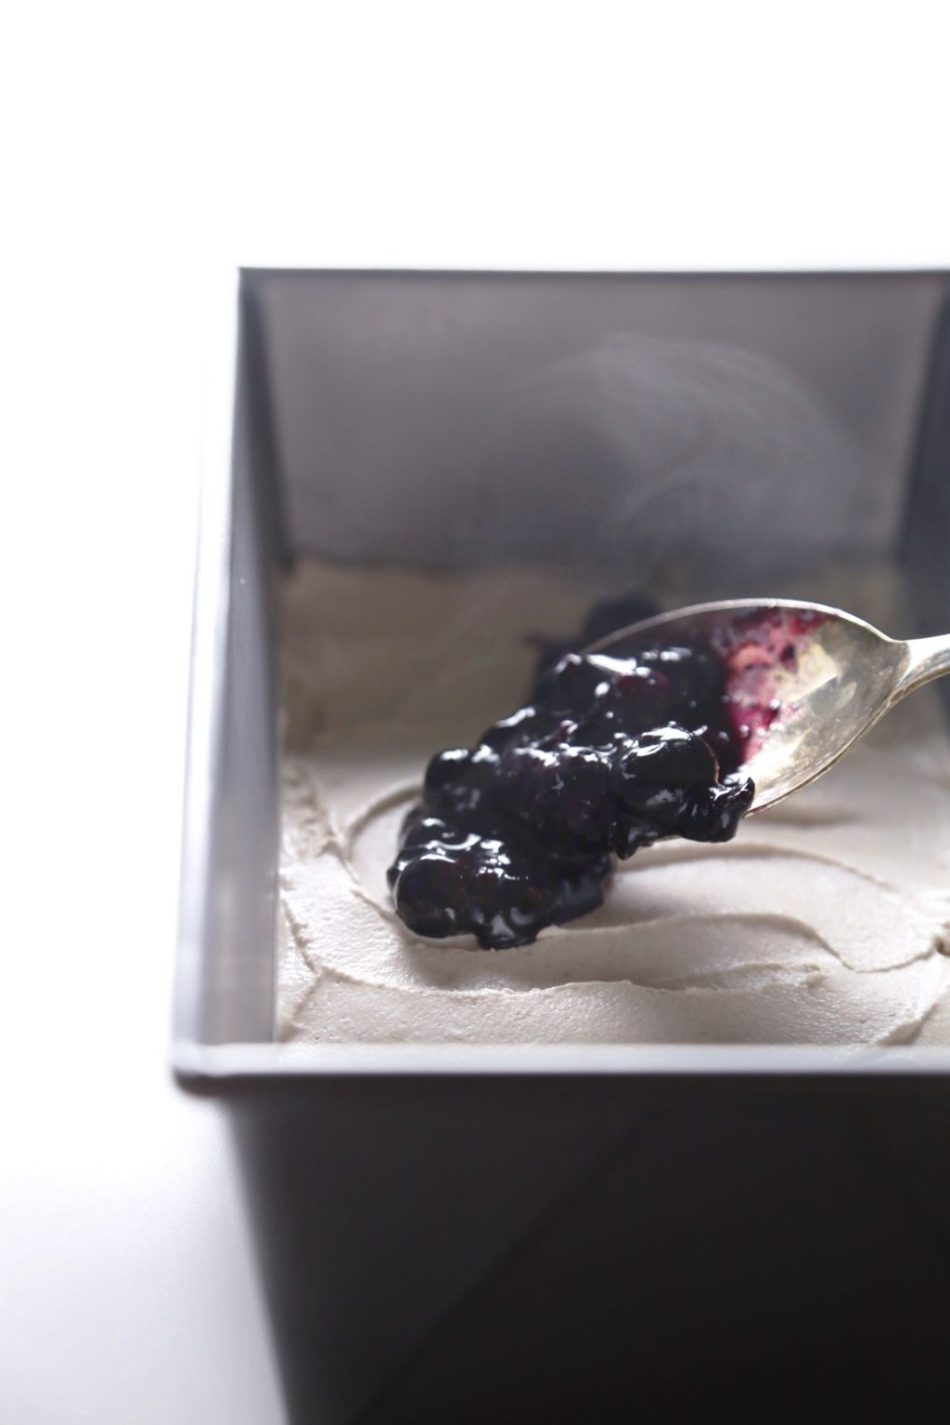 Vegan Blueberry Cheesecake Ice Cream | Free of dairy, gluten, grains, and refined sugar.